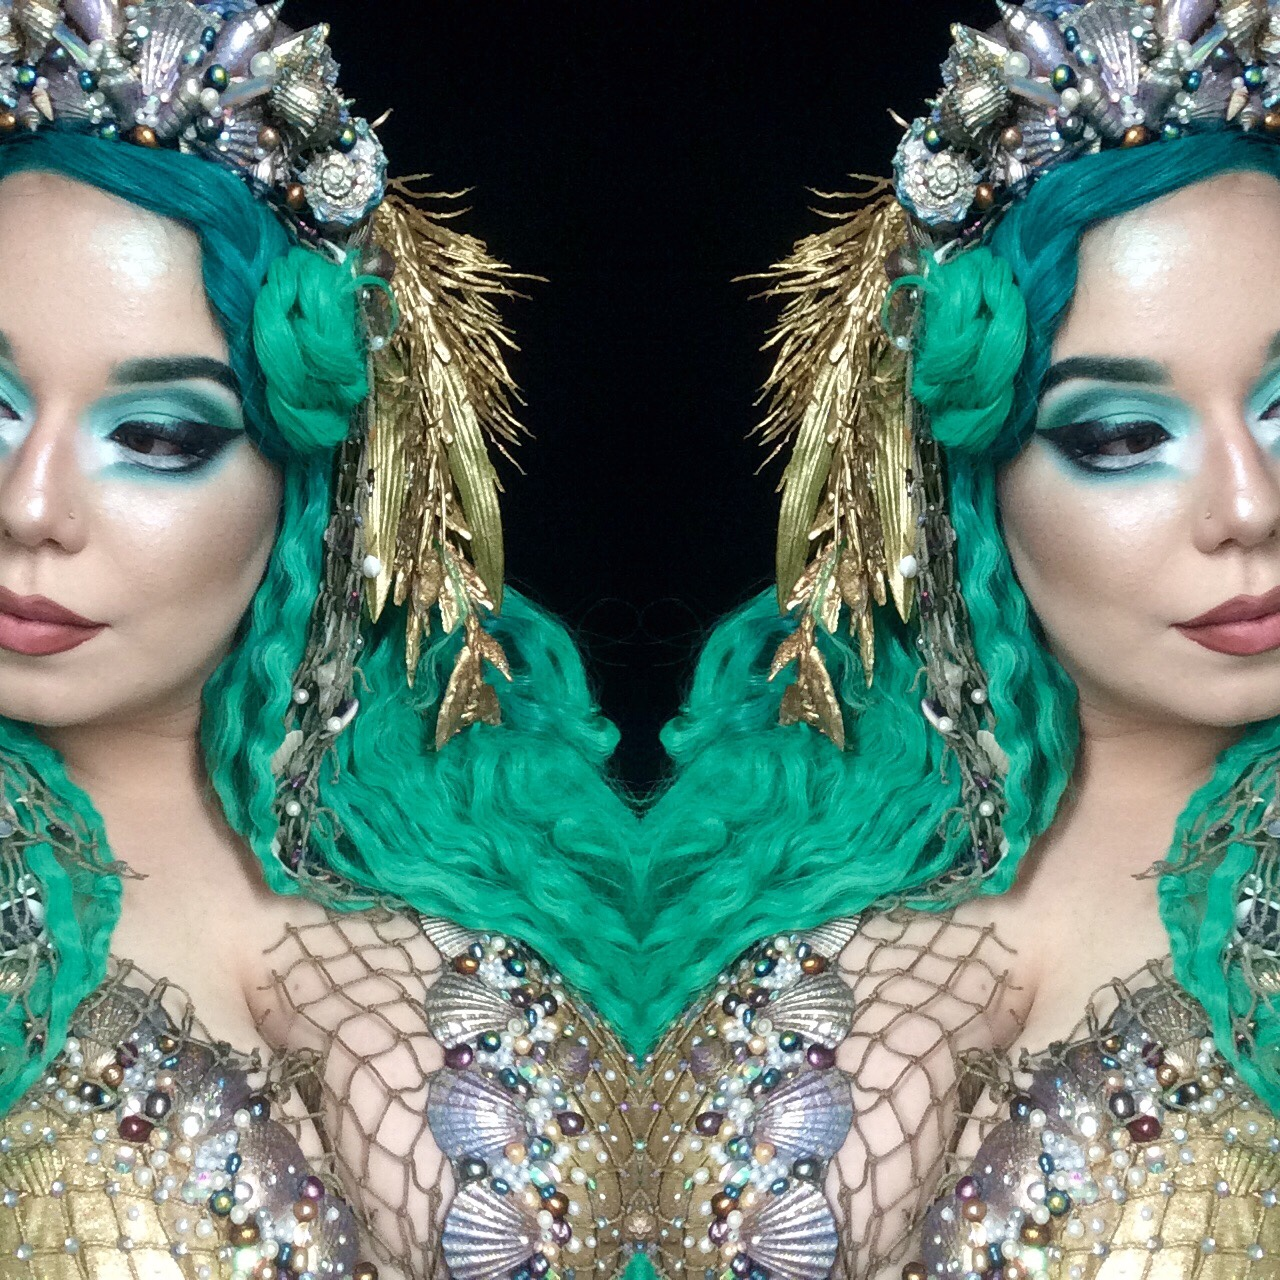 Share Your Mermaid Makeup! - Page 5